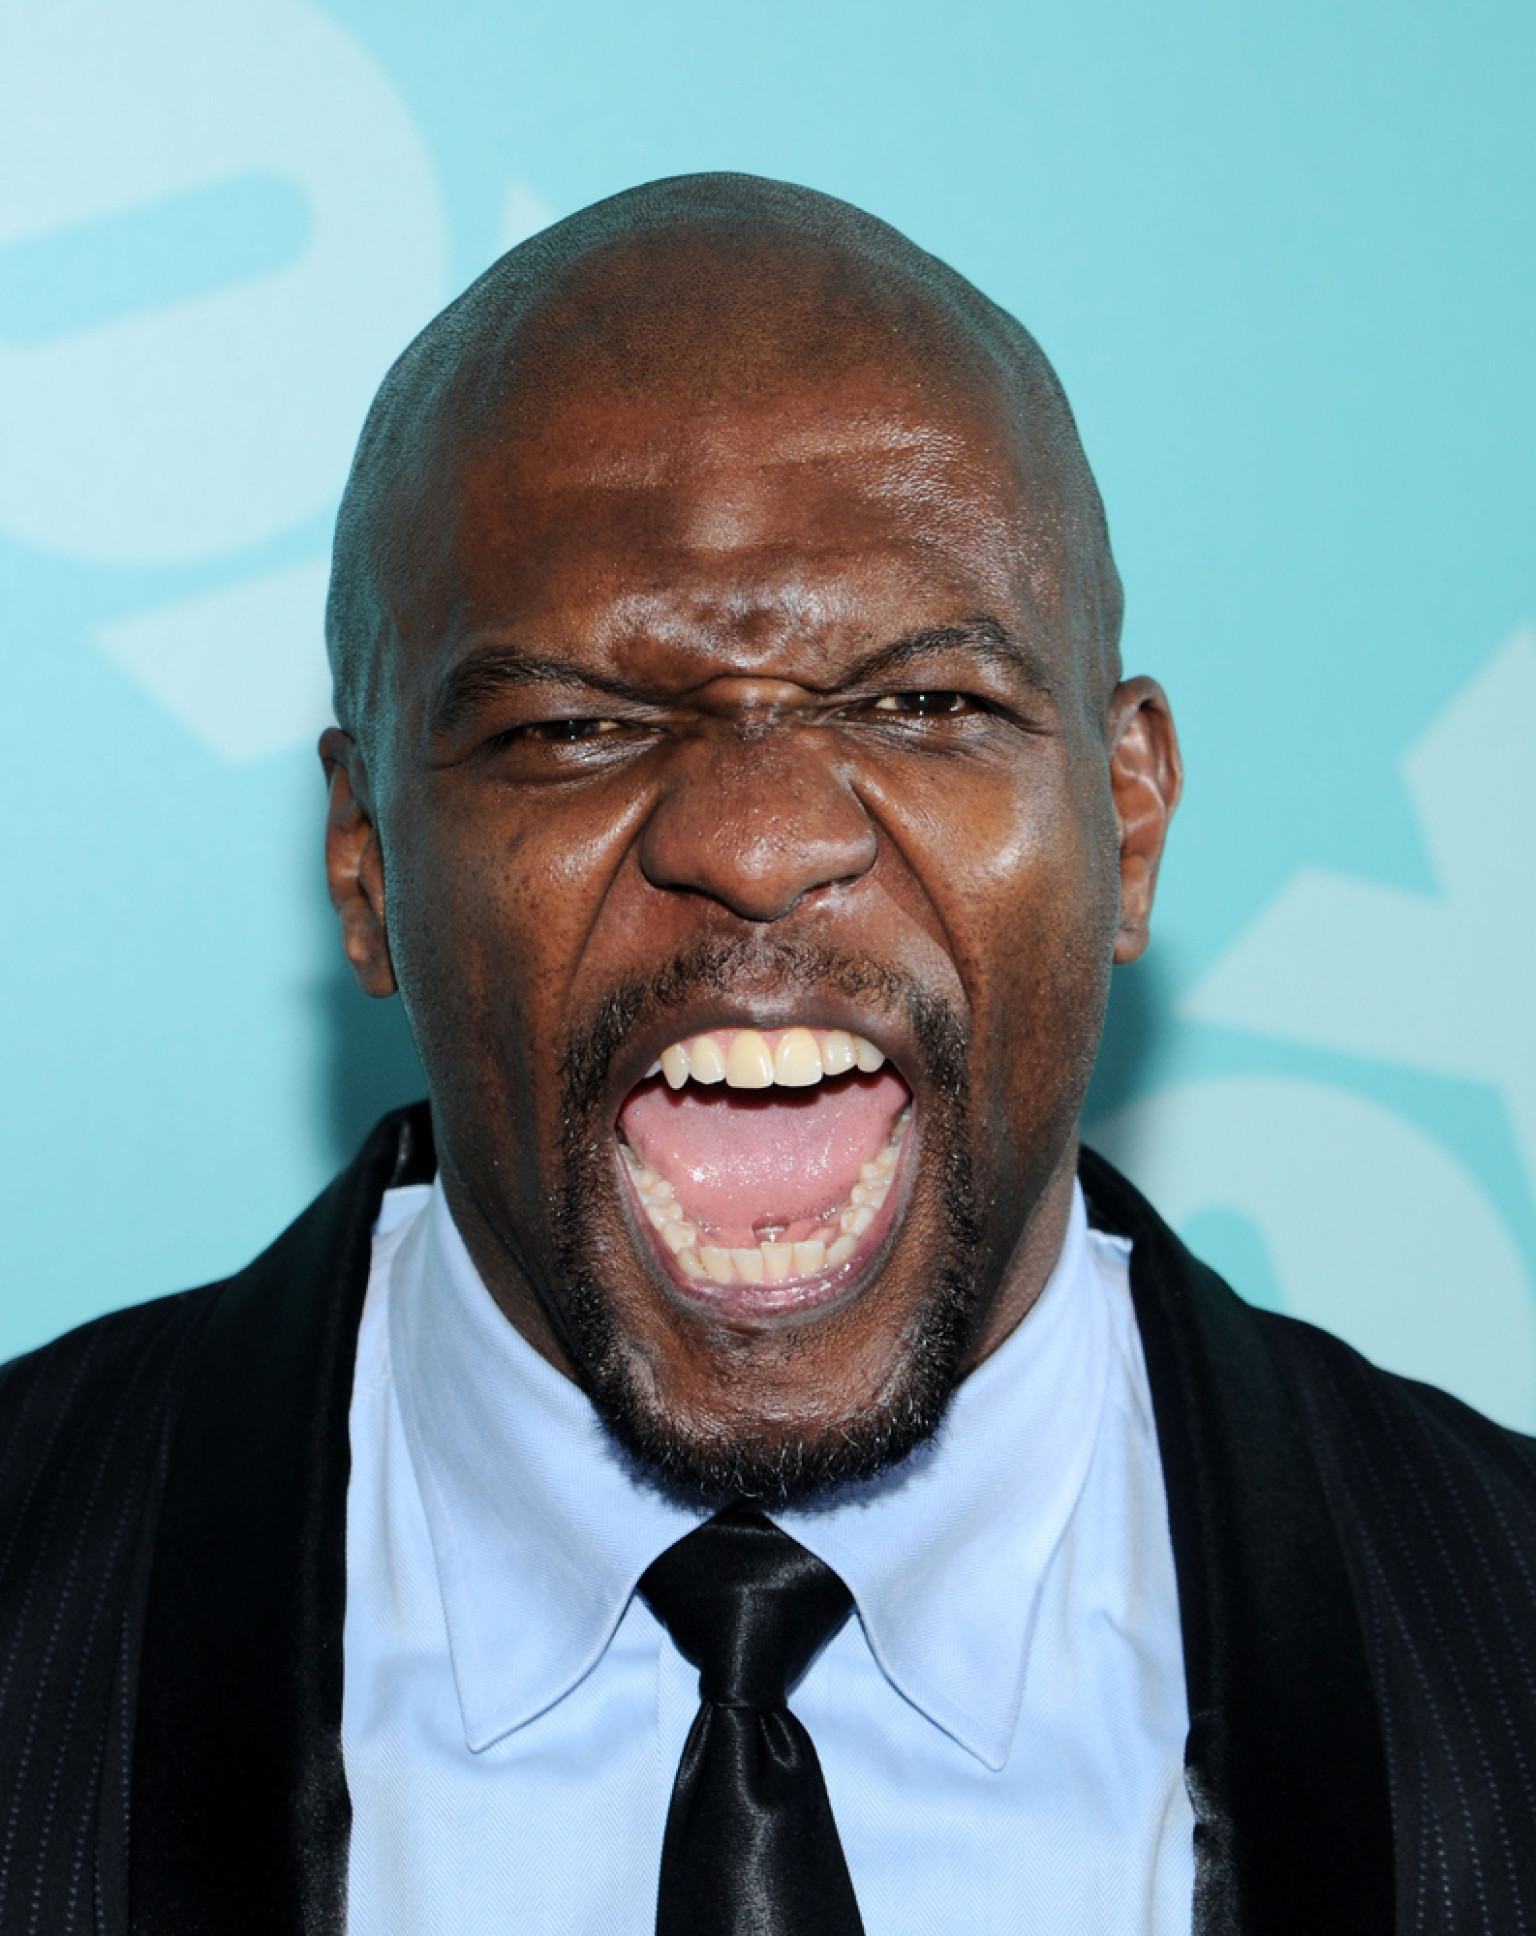 terry crews pcterry crews doomfist, terry crews twitter, terry crews twitch, terry crews power, terry crews height, terry crews sport dance, terry crews wife, terry crews nfl, terry crews кинопоиск, terry crews saves christmas, terry crews facebook, terry crews youtube, terry crews family, terry crews pc, terry crews robot, terry crews фильмография, terry crews old spice, terry crews paintings, terry crews stream, terry crews euro training